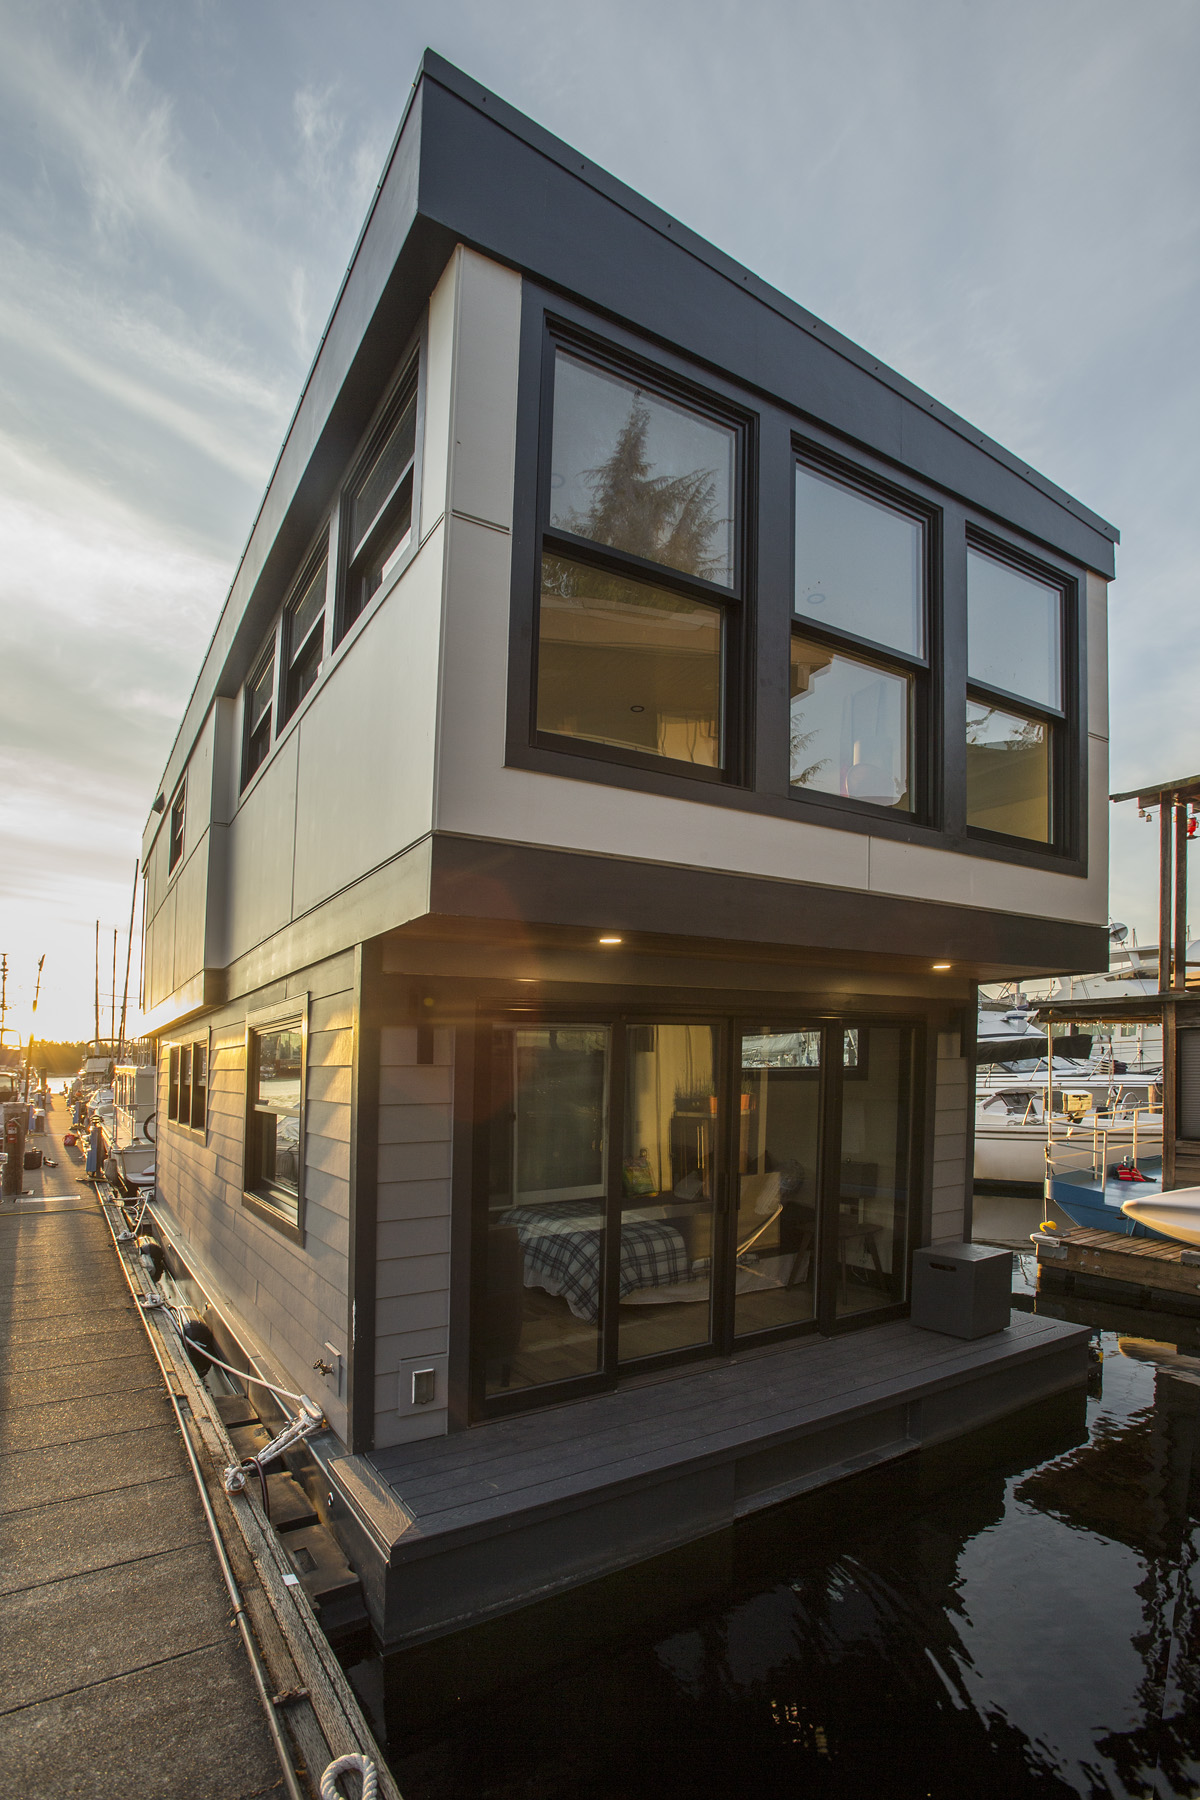 EQUINOX - Our latest luxury houseboat just completed in August of 2019 in Seattle, Washington. Equinox is a 2 story, 915 square foot houseboat. Just put on the market at $699,000. Schedule a tour any time.2540 Westlake Avenue NorthSeattle, WA 98109